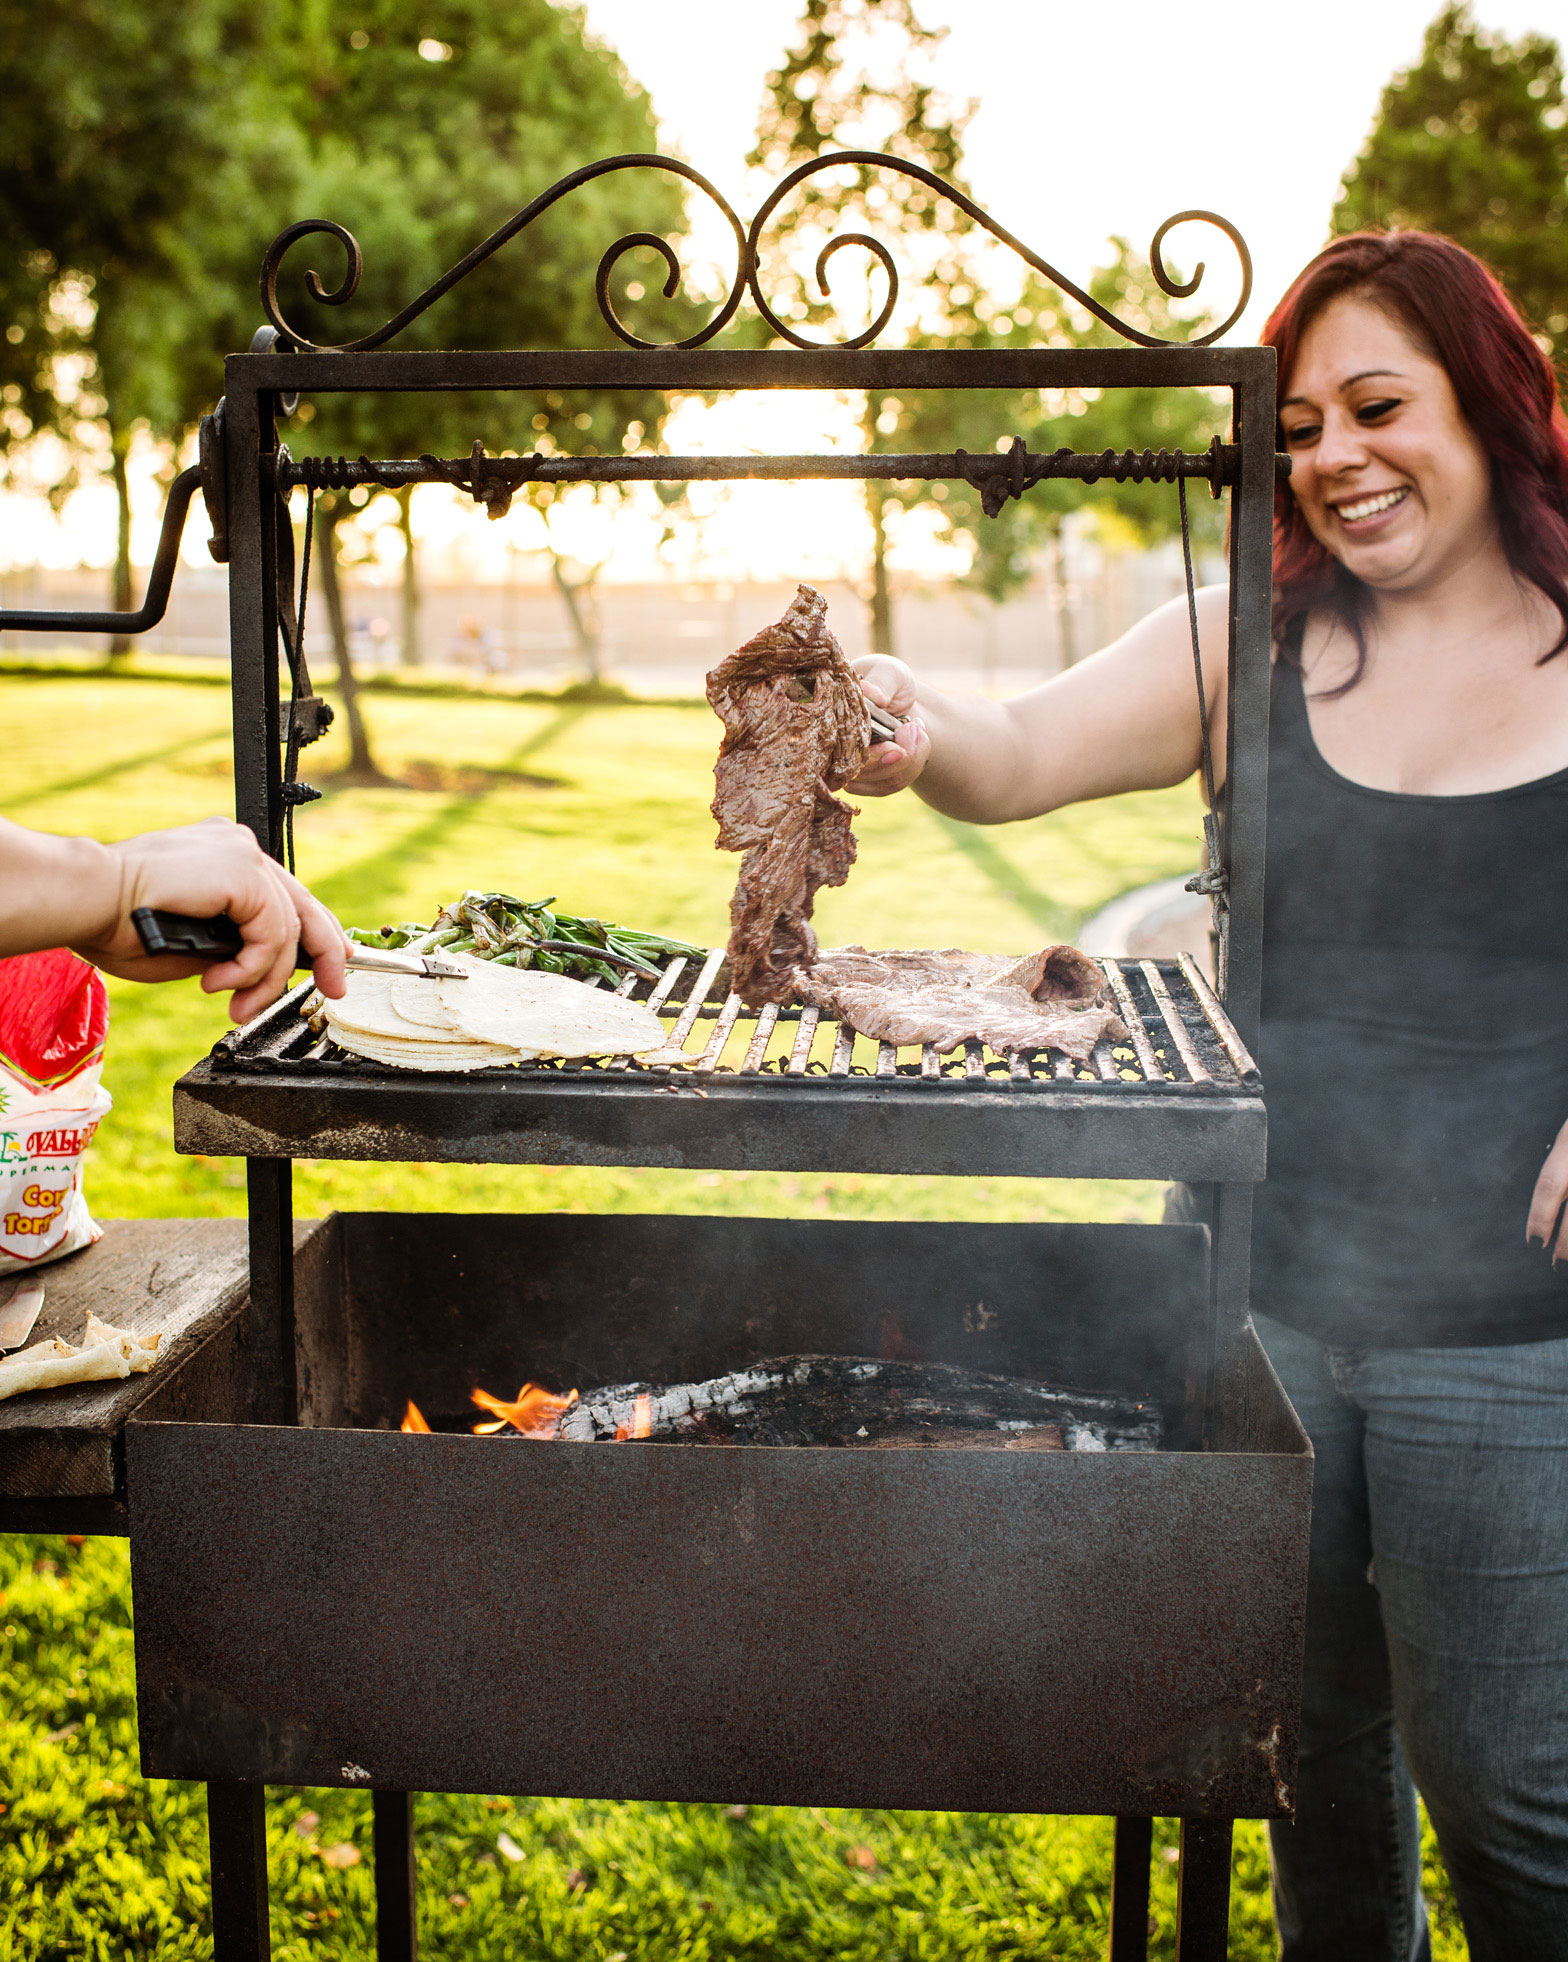 stephanie correa grills a flap steak in the park in santa maria